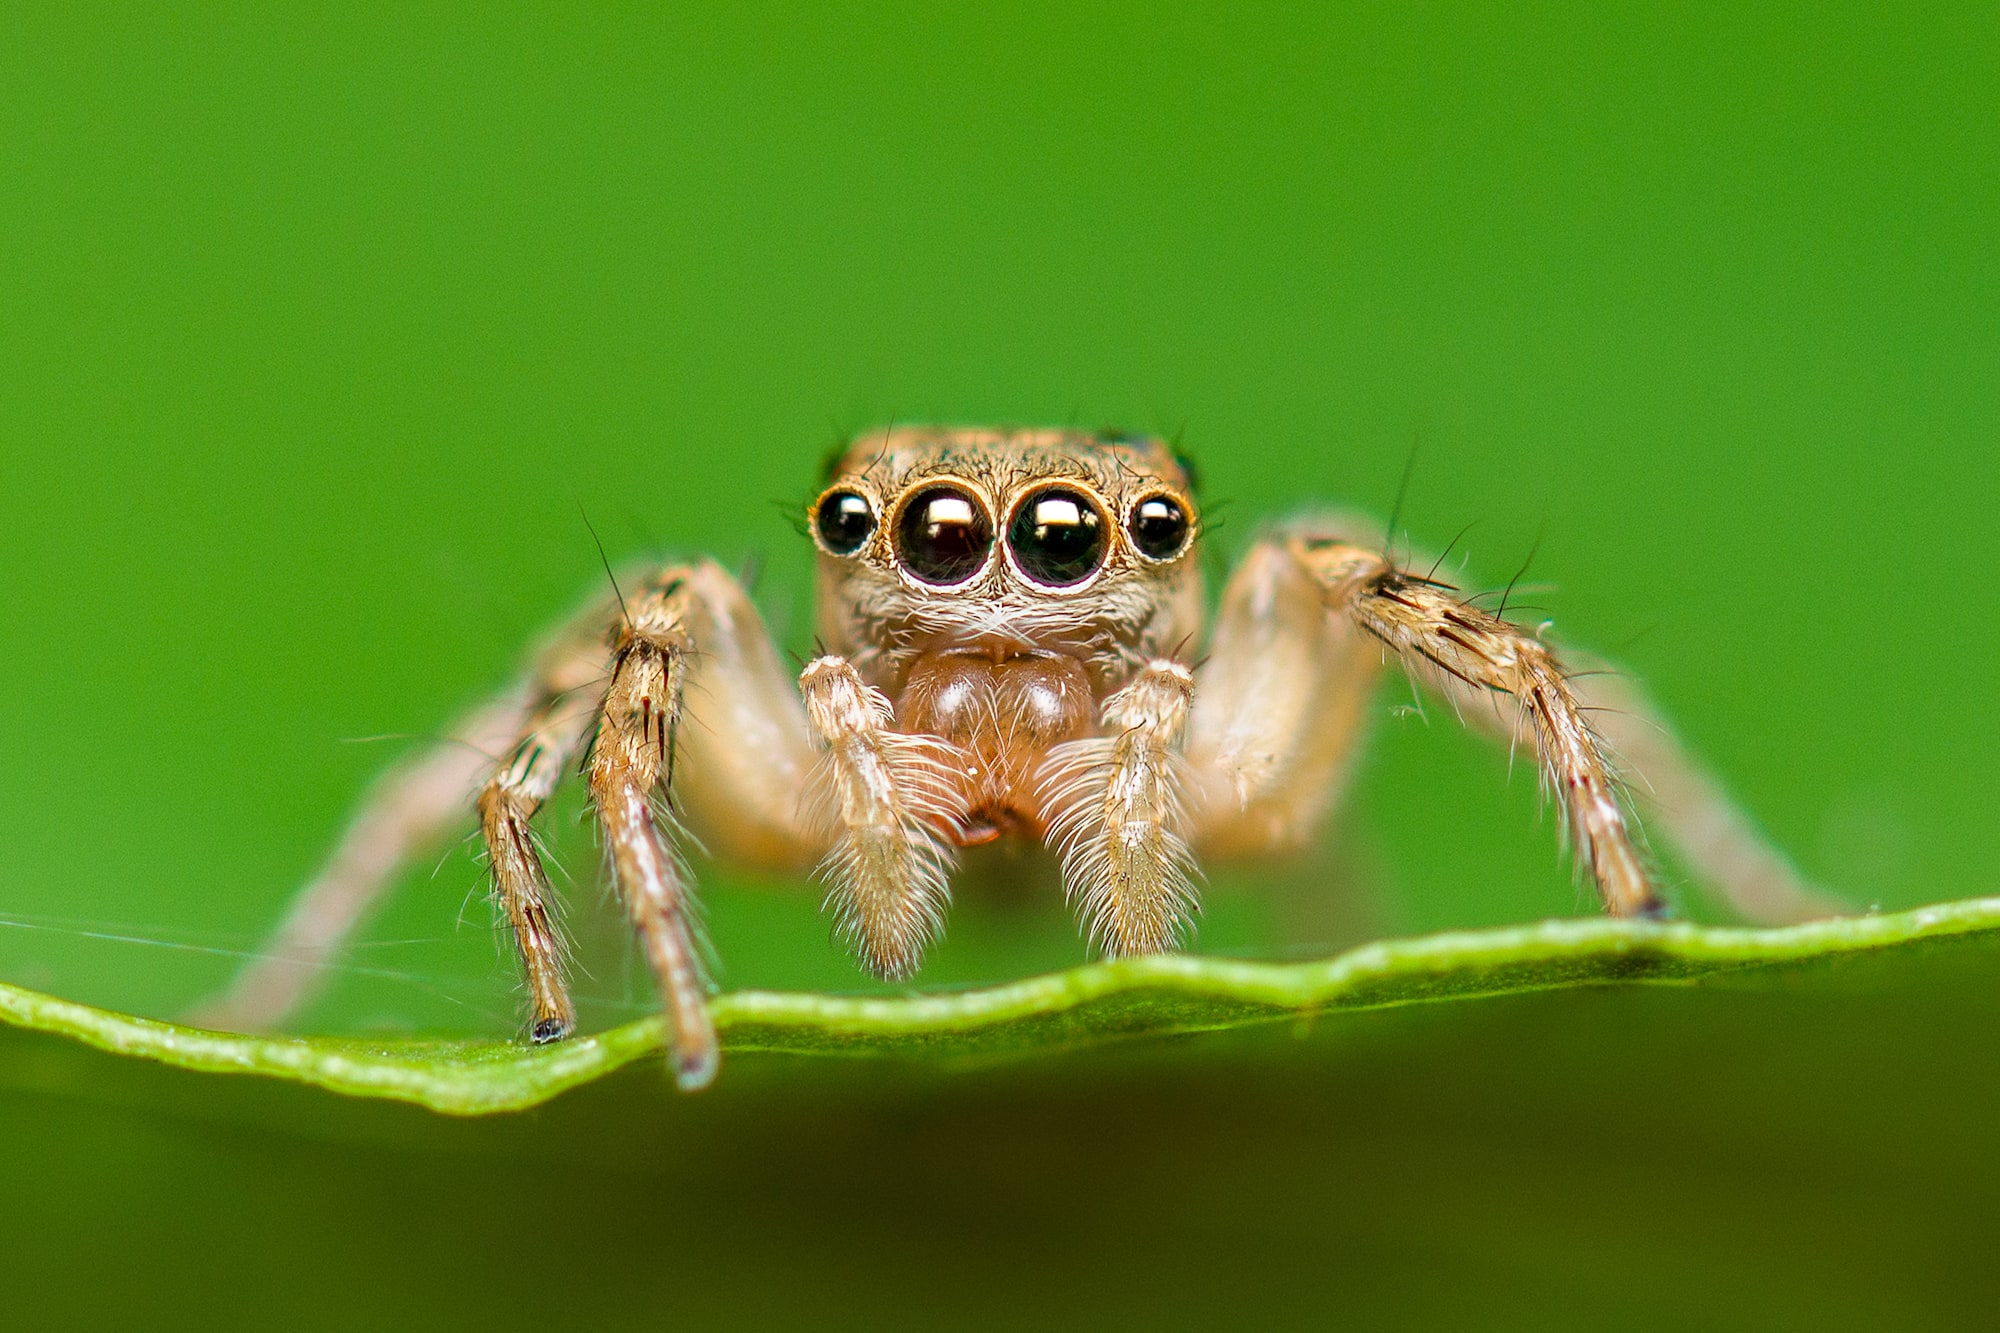 An efficient new depth sensor was inspired by spider eyes | Engadget